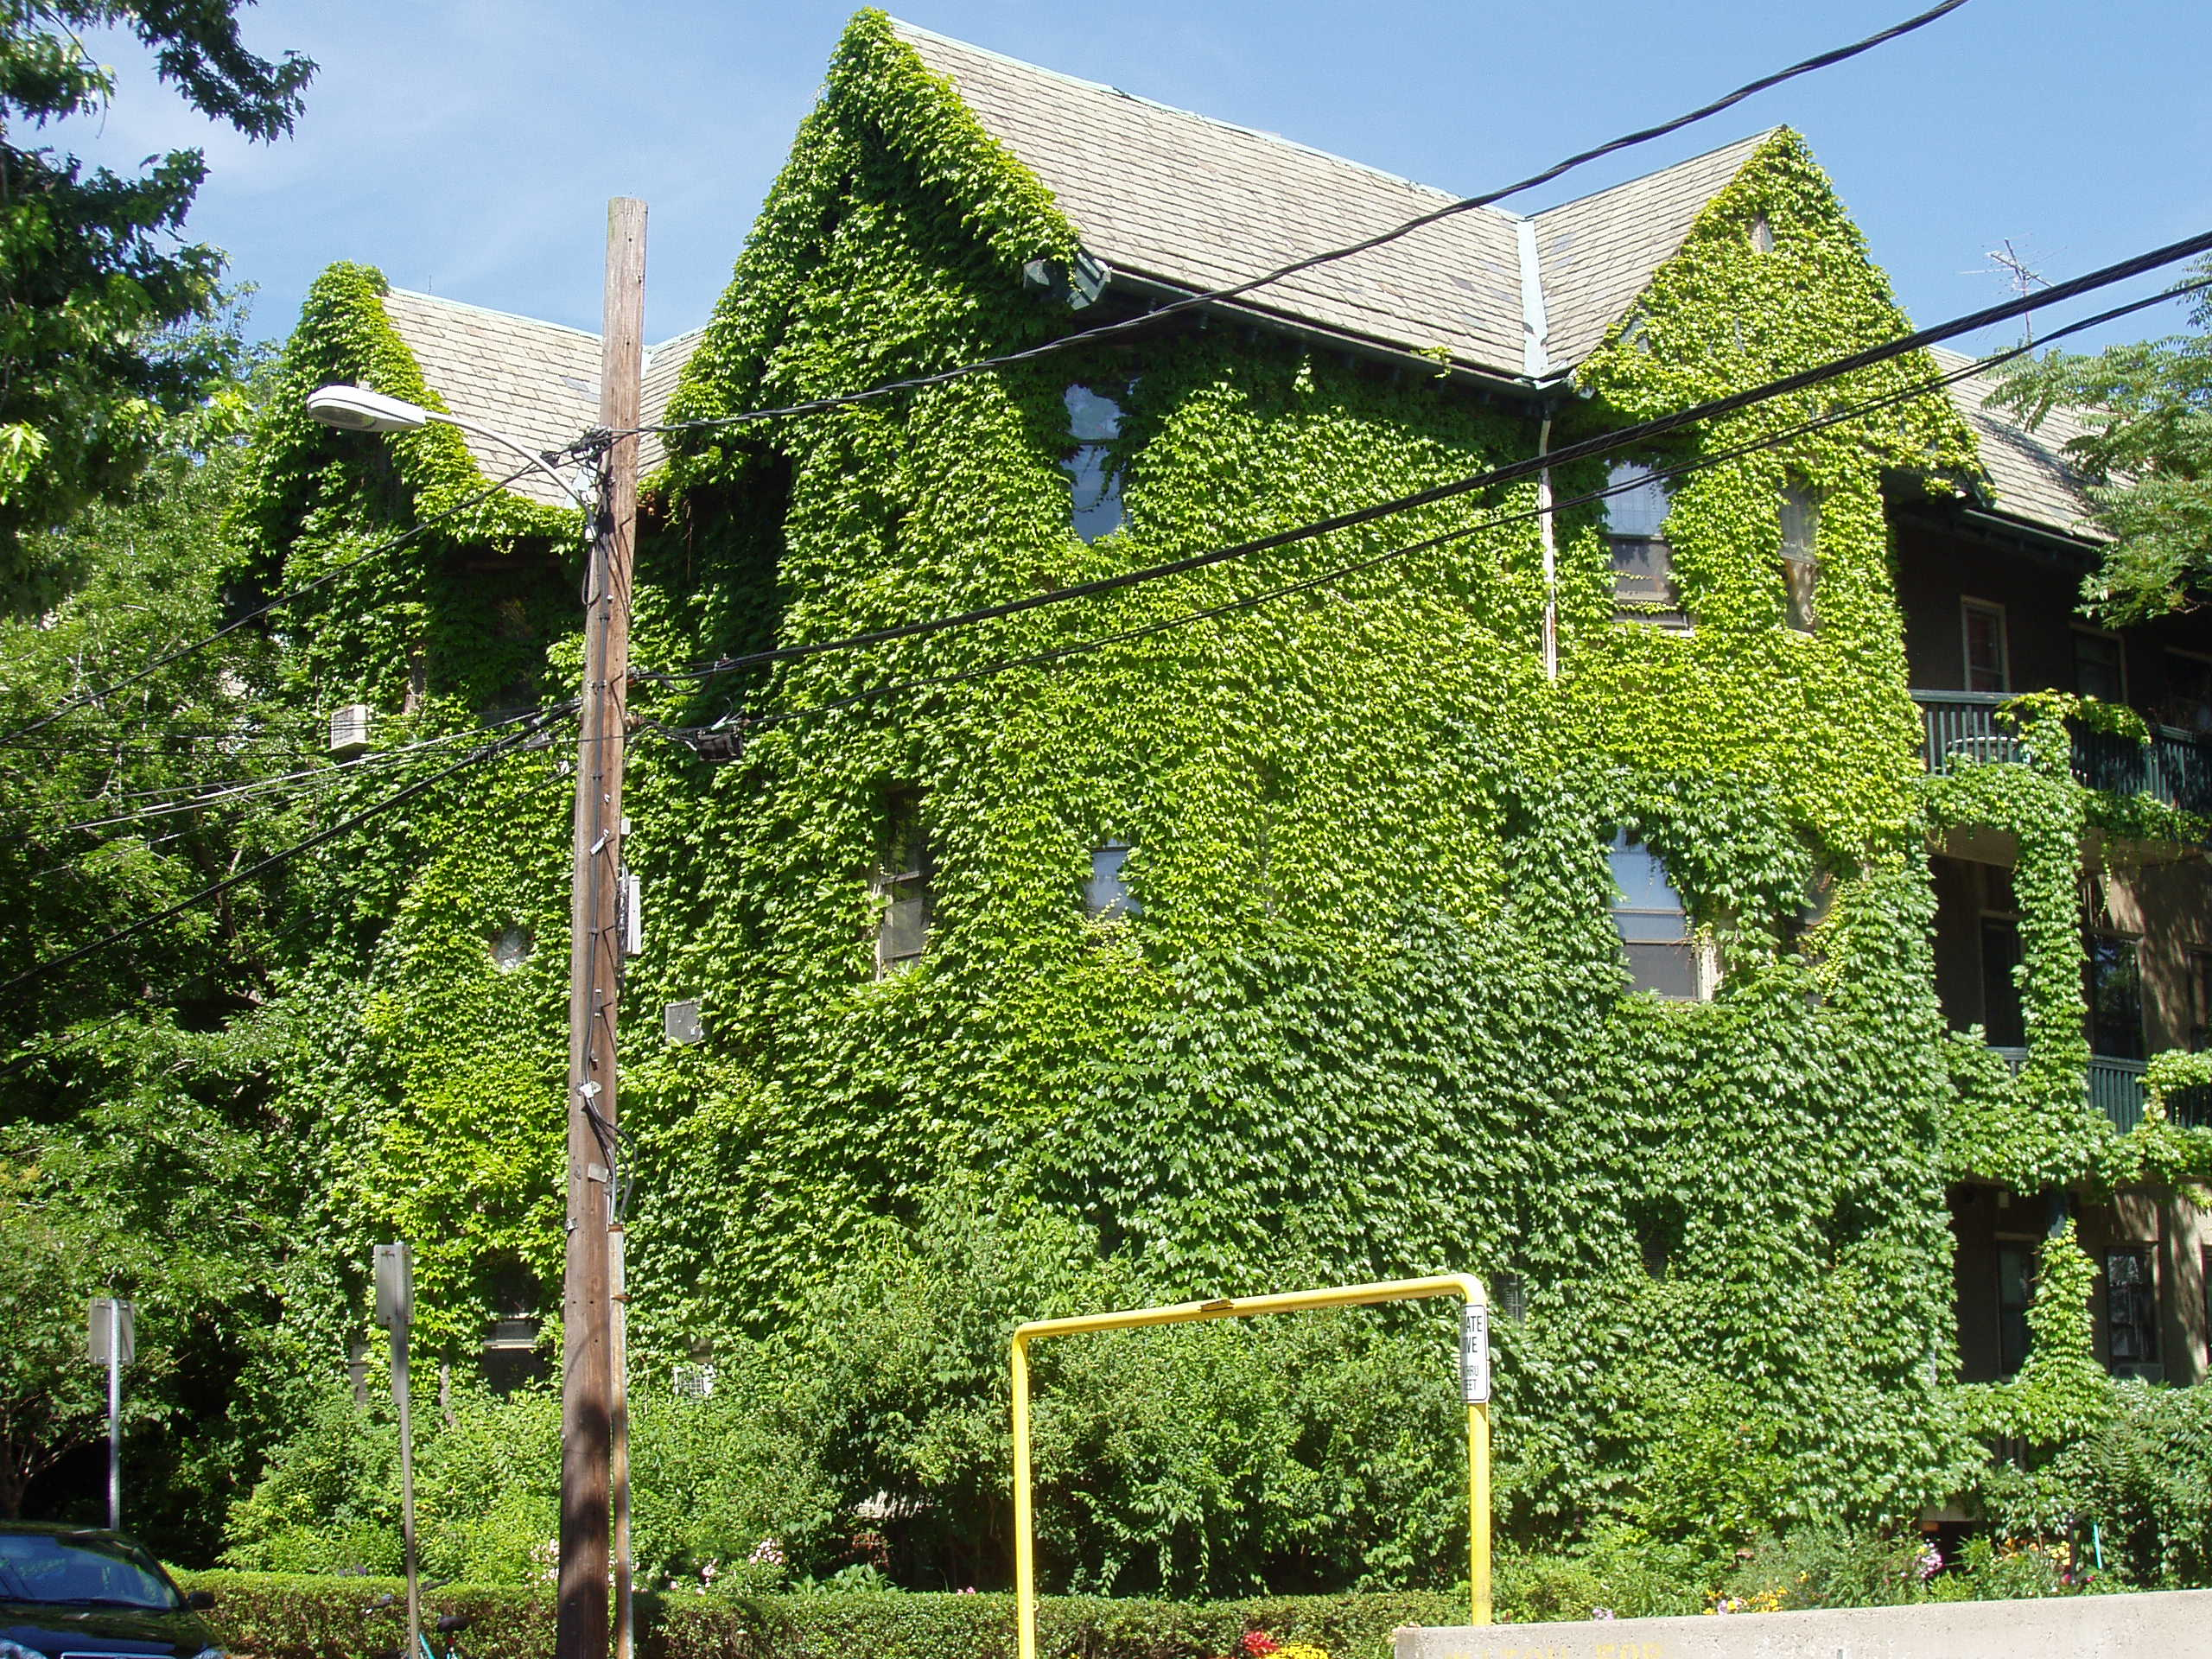 File:Ivy-covered house, Cambridge, Massachusetts.JPG